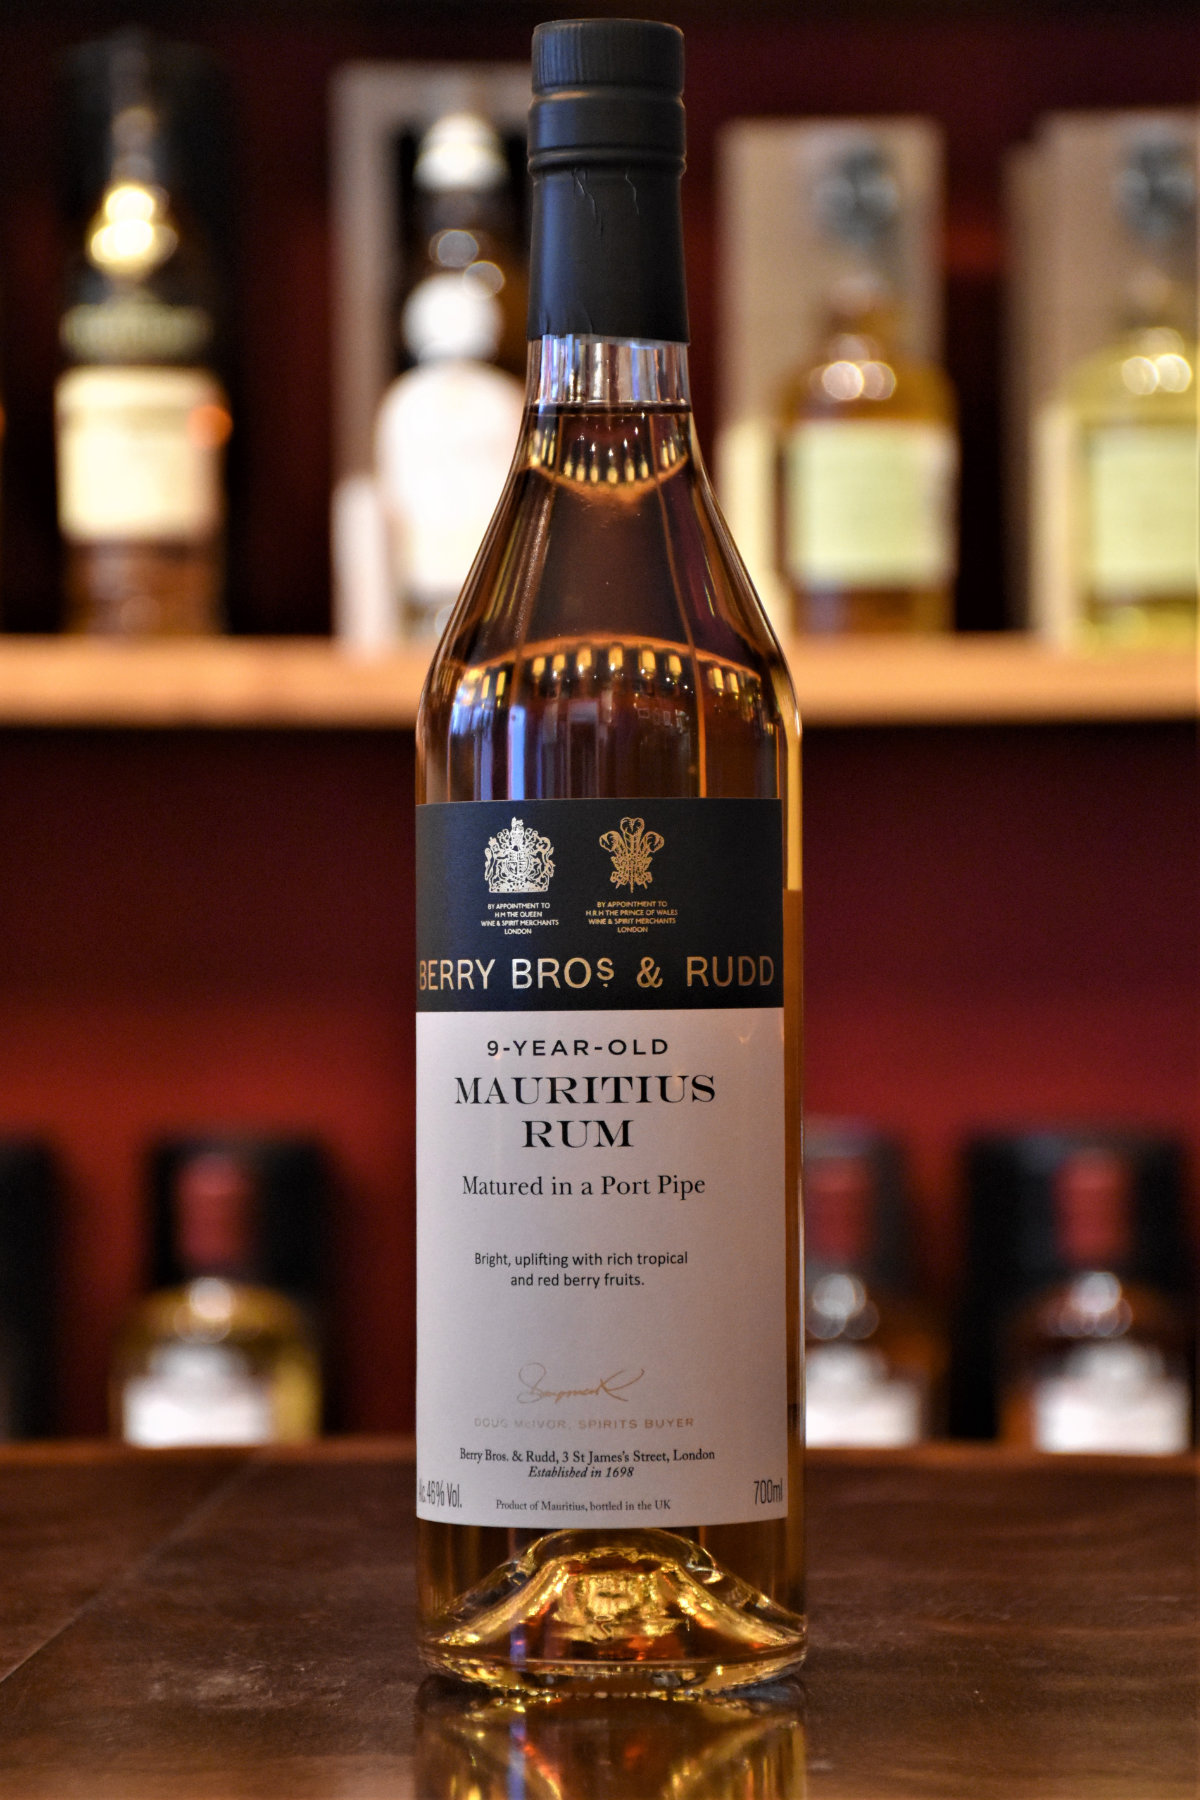 Mauritius 2010, 10 y.o. - Batch No. 1, Port Pipe, 46% Alc.Vol., Berry Bros.&Rudd